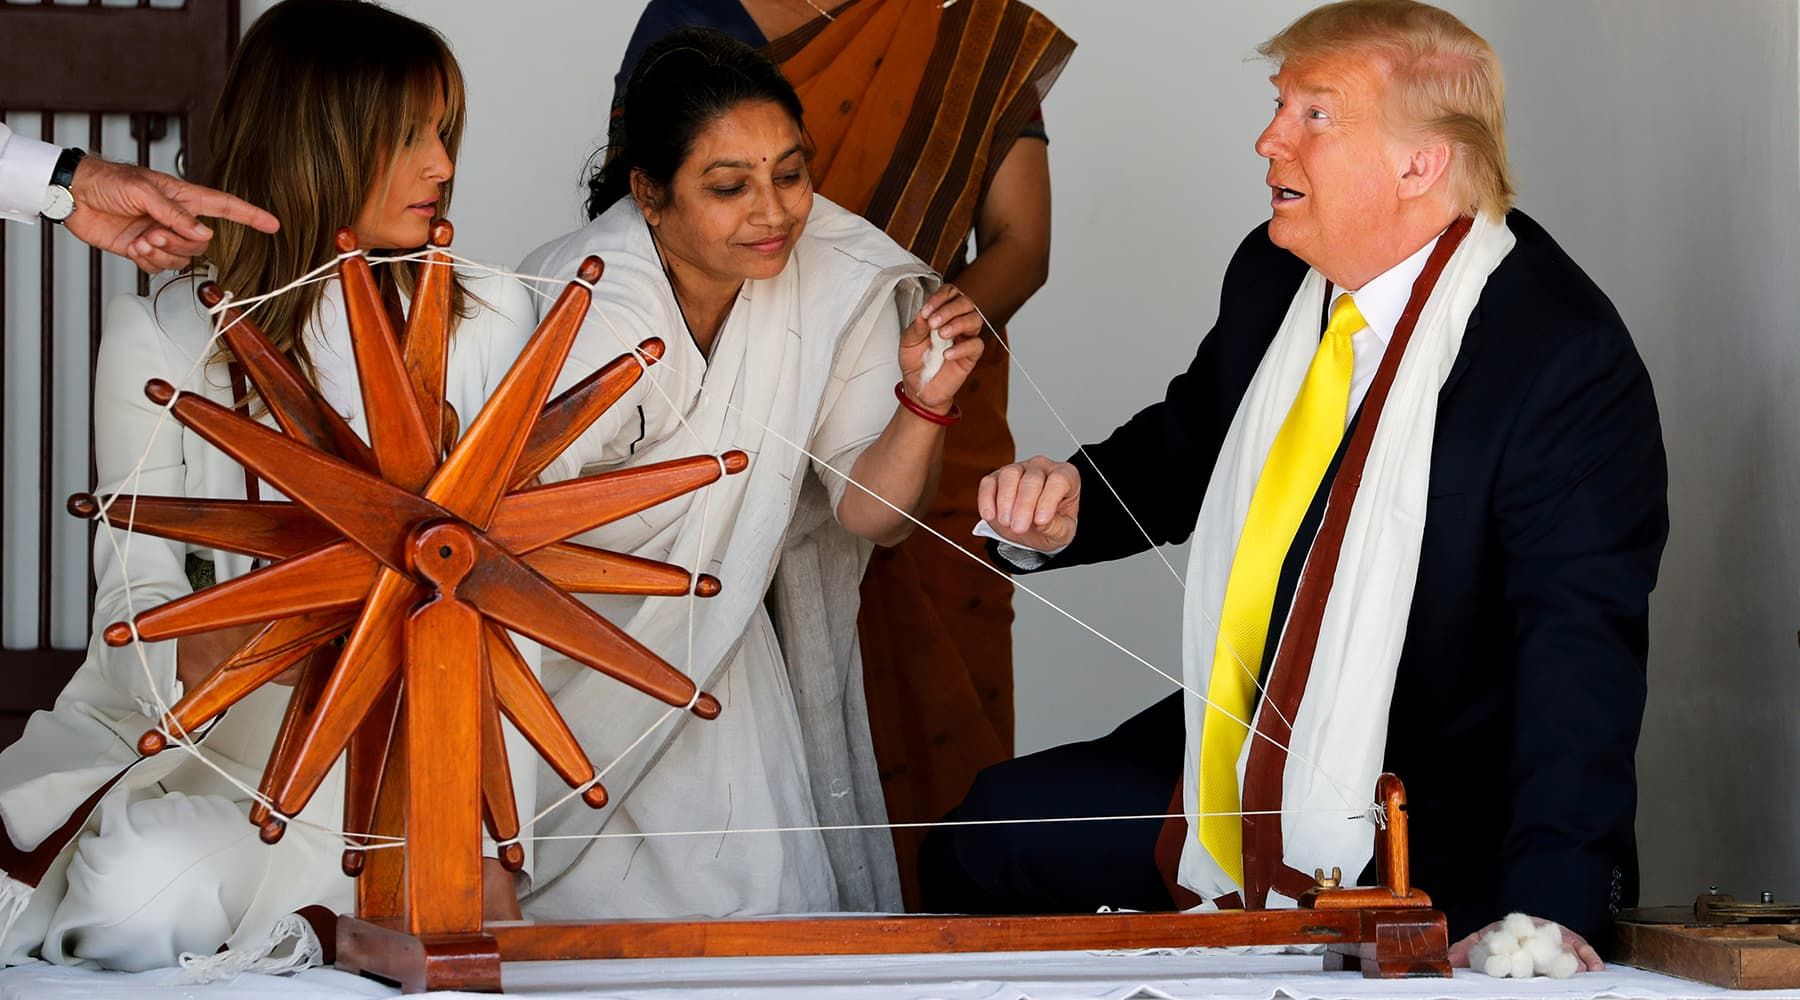 Women show how a Charkha, a type of Indian spinning wheel, works to US President Donald Trump and first lady Melania Trump, as they visit the Gandhi Ashram in Ahmedabad, India, February 24. — Reuters